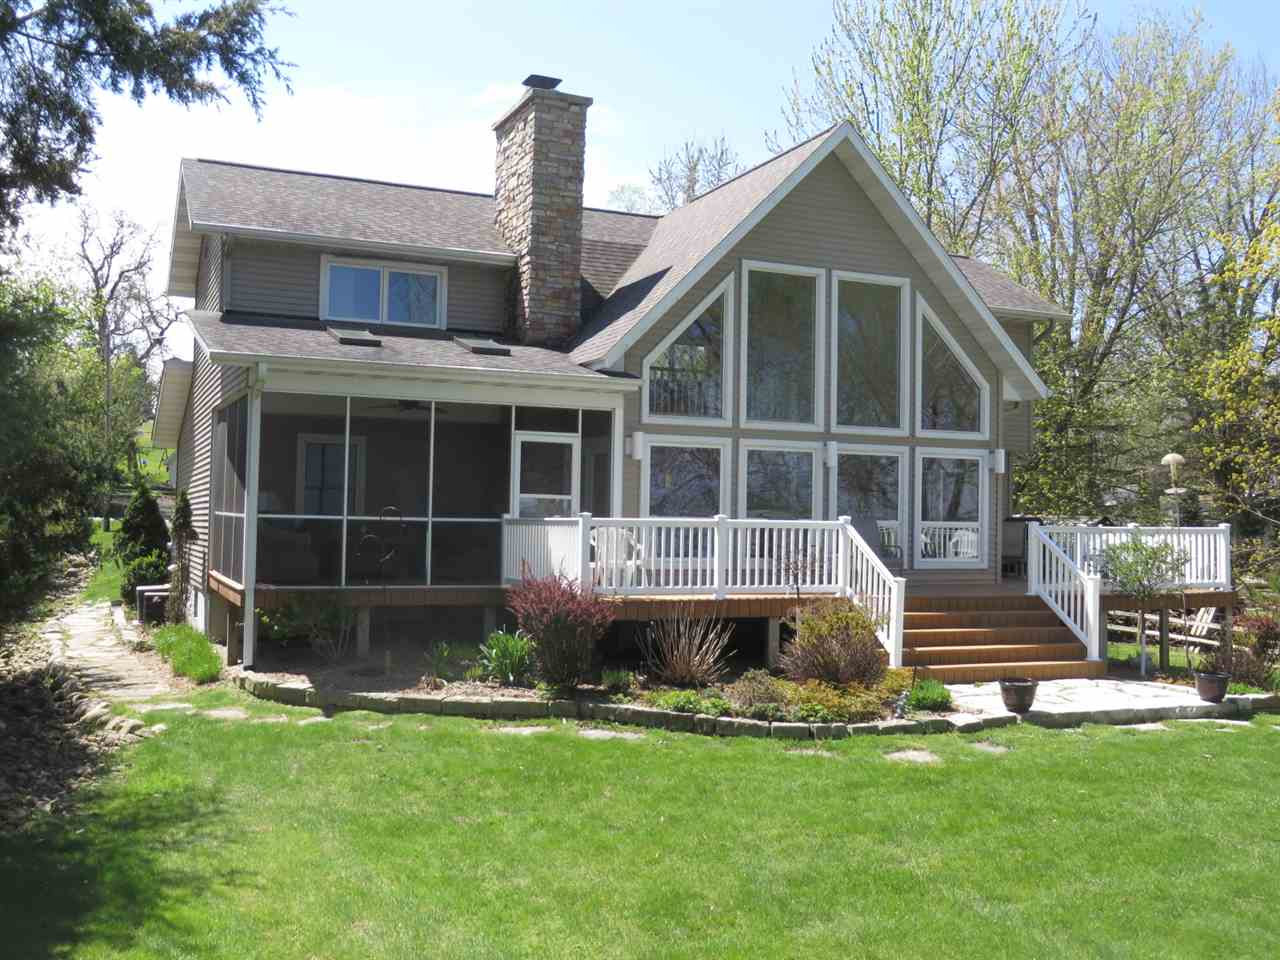 W1316 SPRING GROVE RD, Green Lake, WI 54971